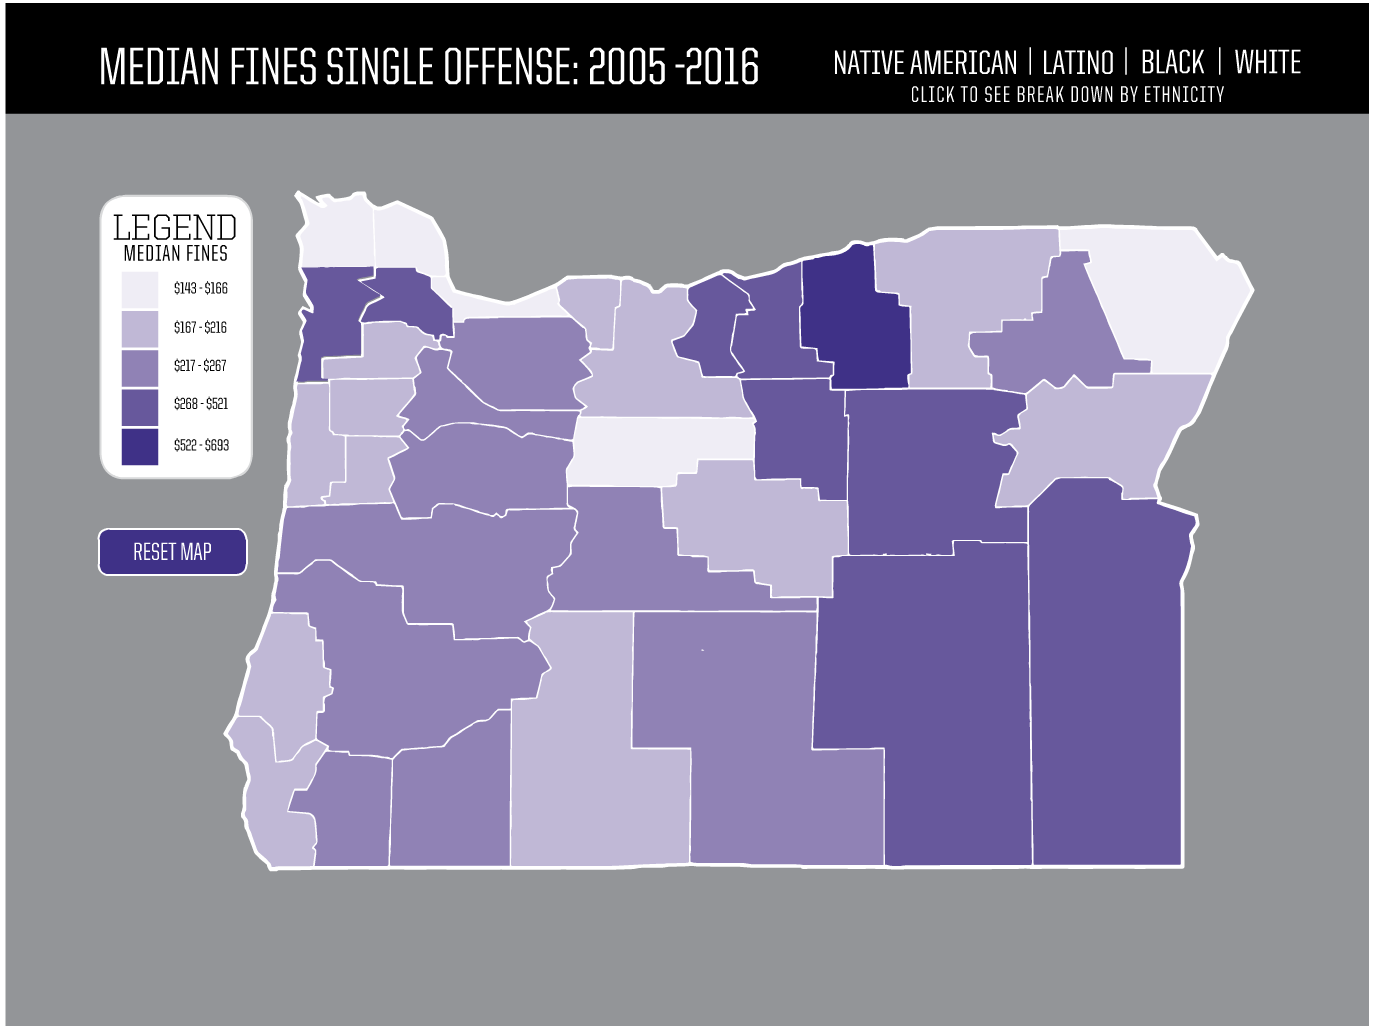 Justice disparate by race in Oregon